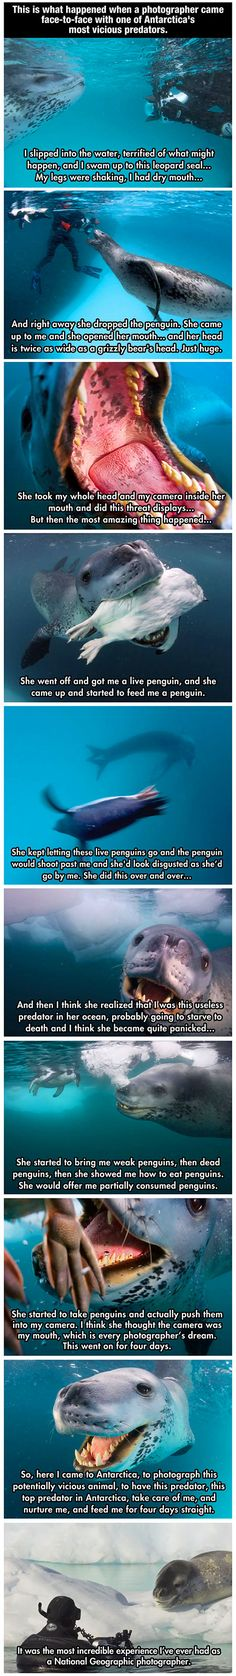 Photographer encounters vicious antarctic predator, who tries to teach him to be a better leopard seal so he'll survive in the wild